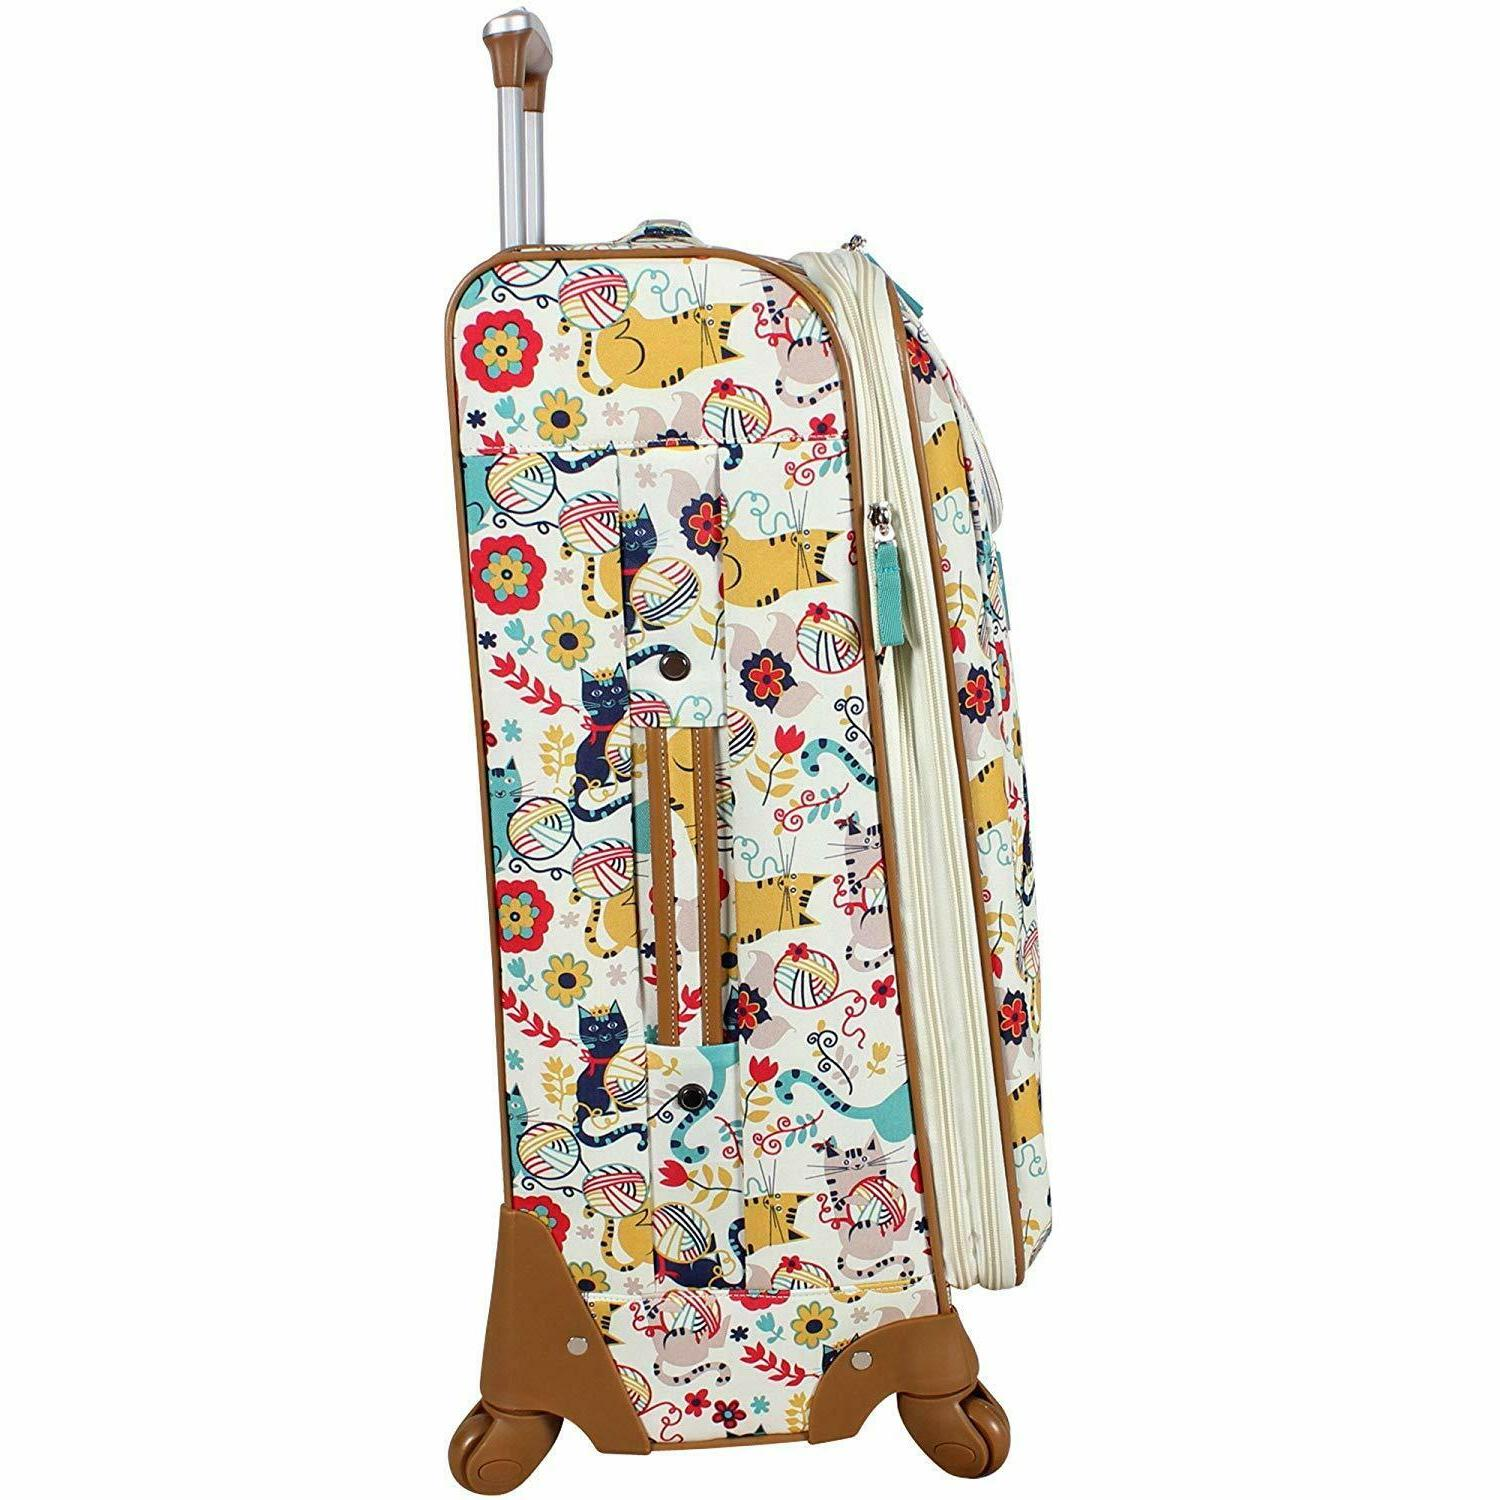 LILY BLOOM FRIENDS LUGGAGE PIECE